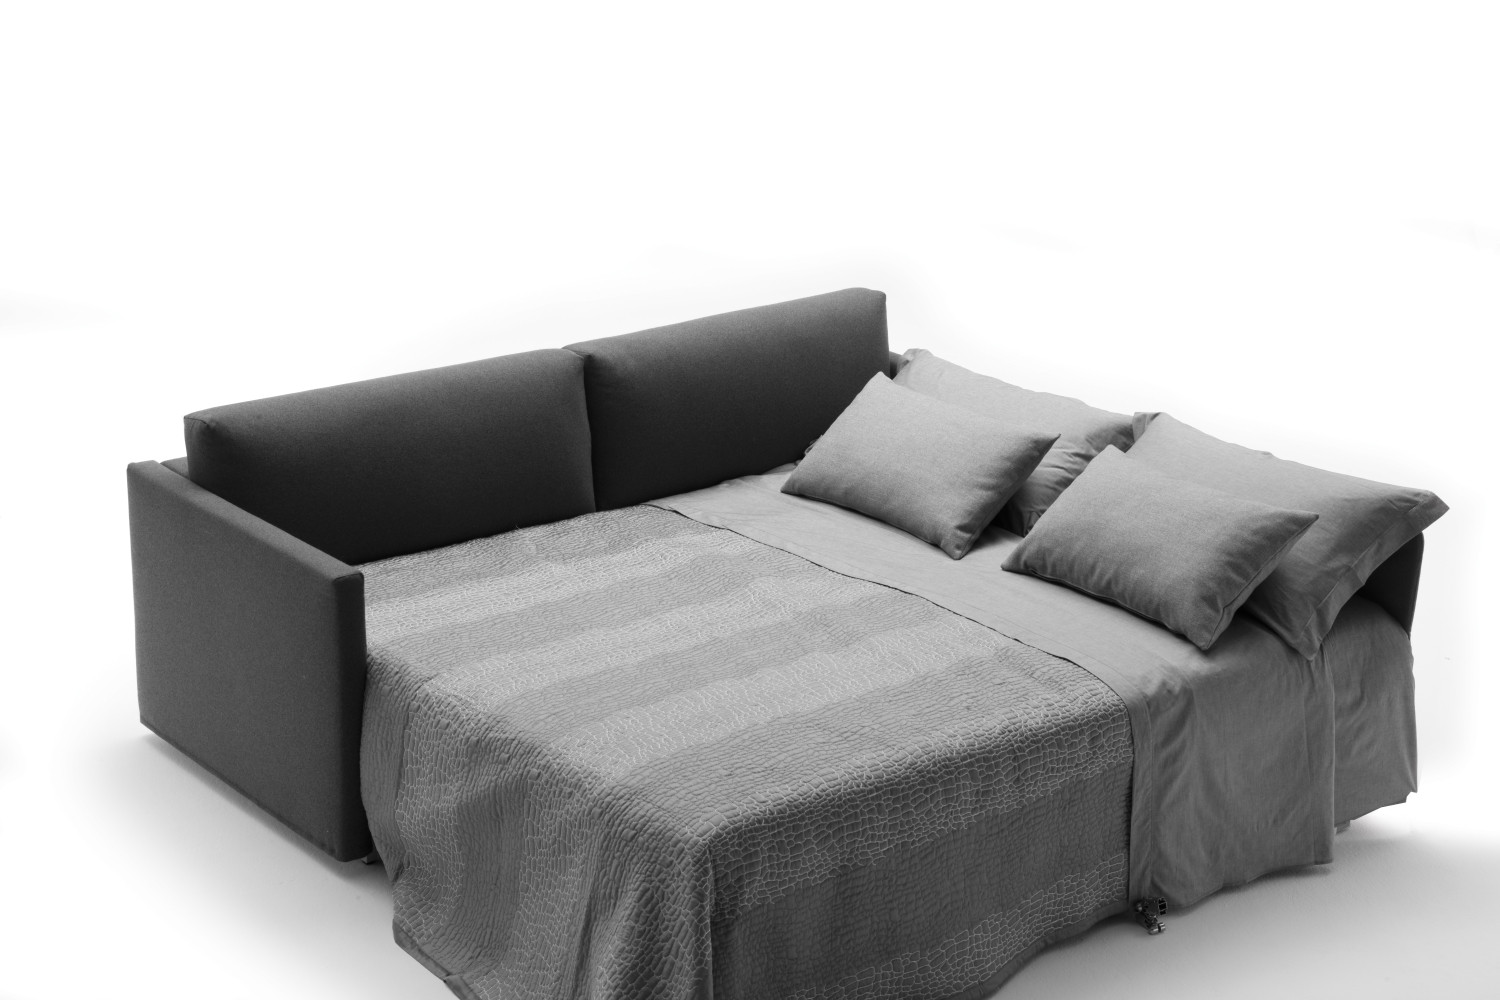 frank sofa bed with extra mattress. Black Bedroom Furniture Sets. Home Design Ideas